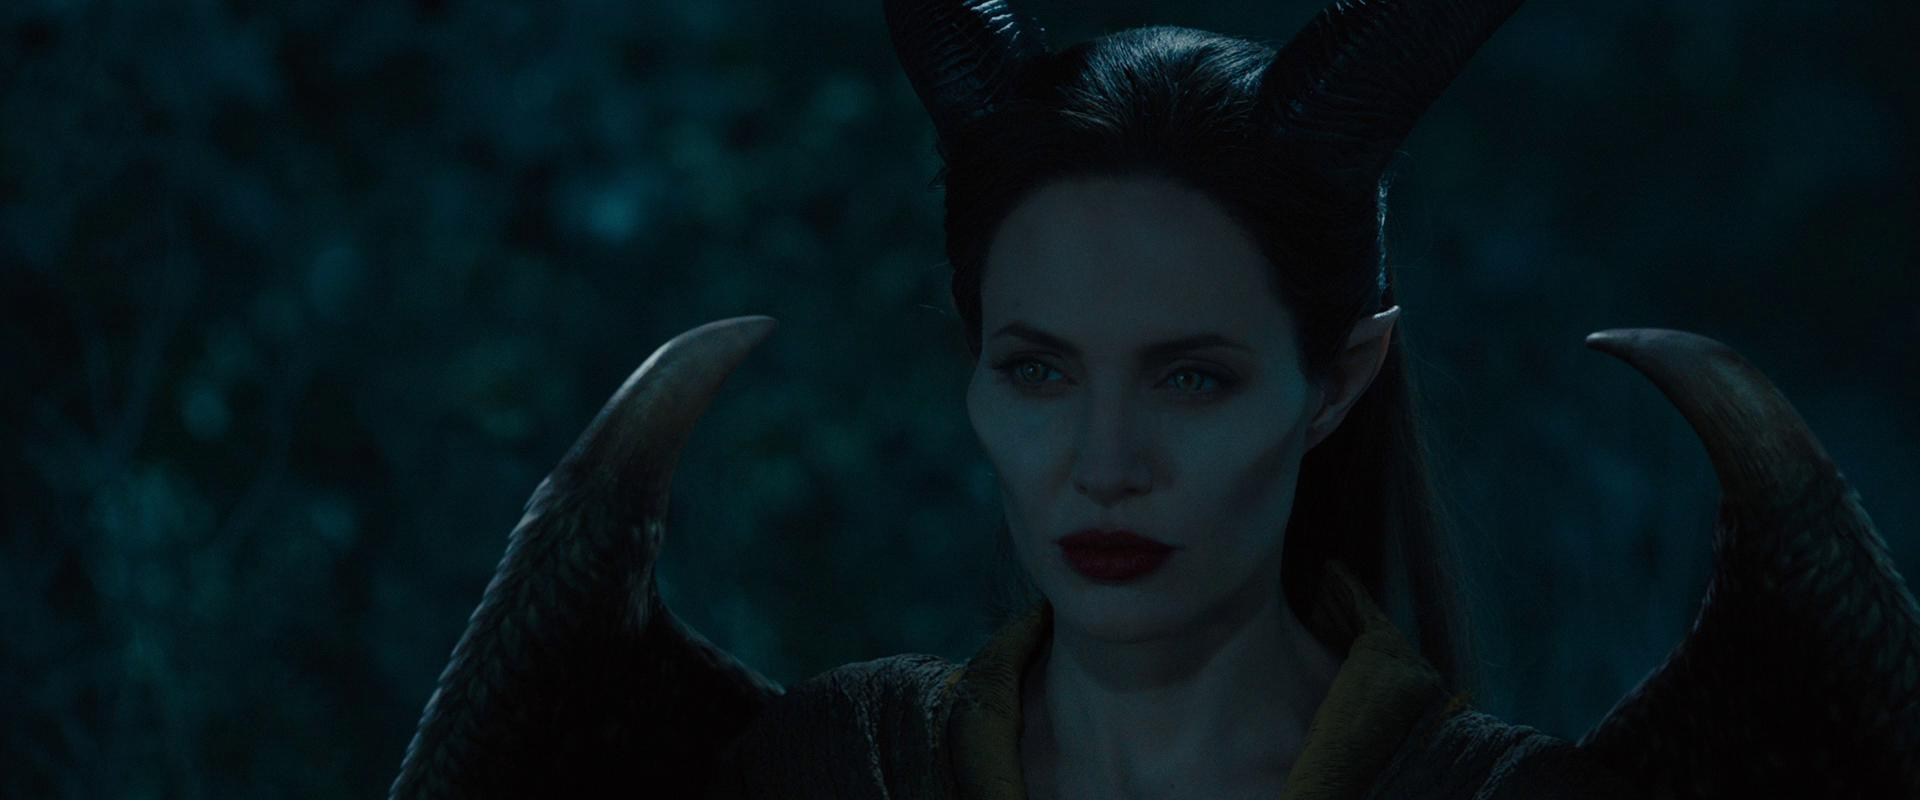 Movierycom  Download the Movie Maleficent Online in HD